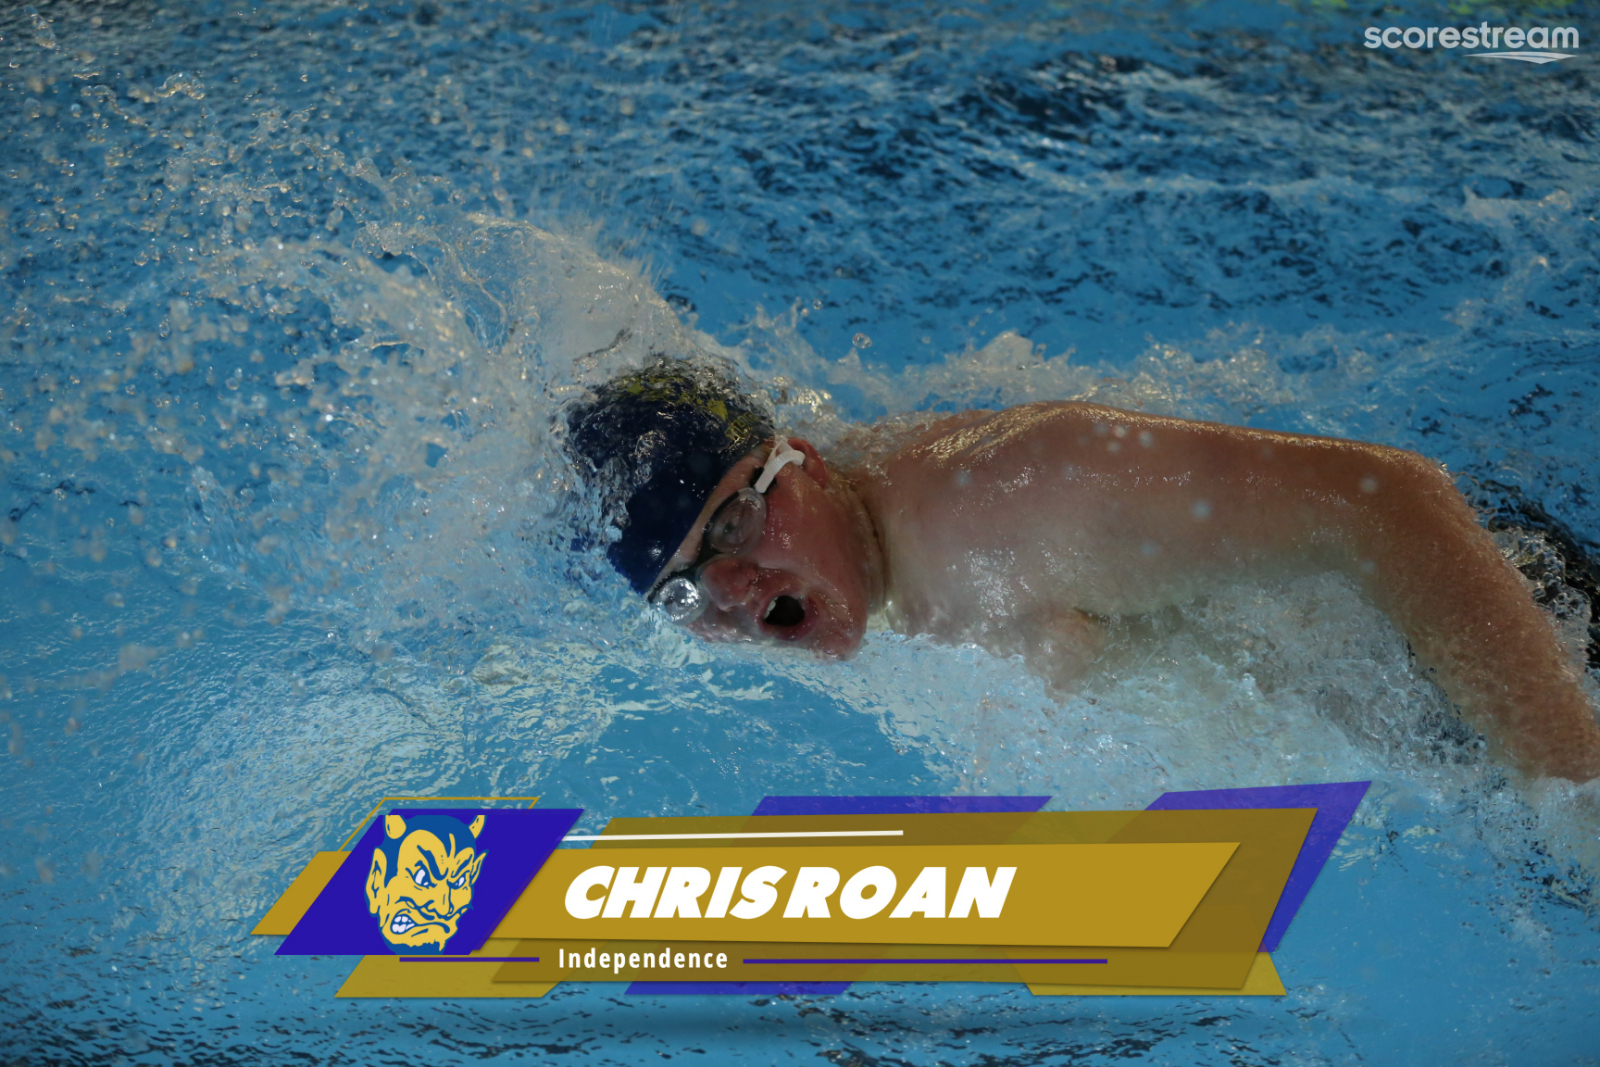 Let's Meet IHS Senior Athlete: Chris Roan